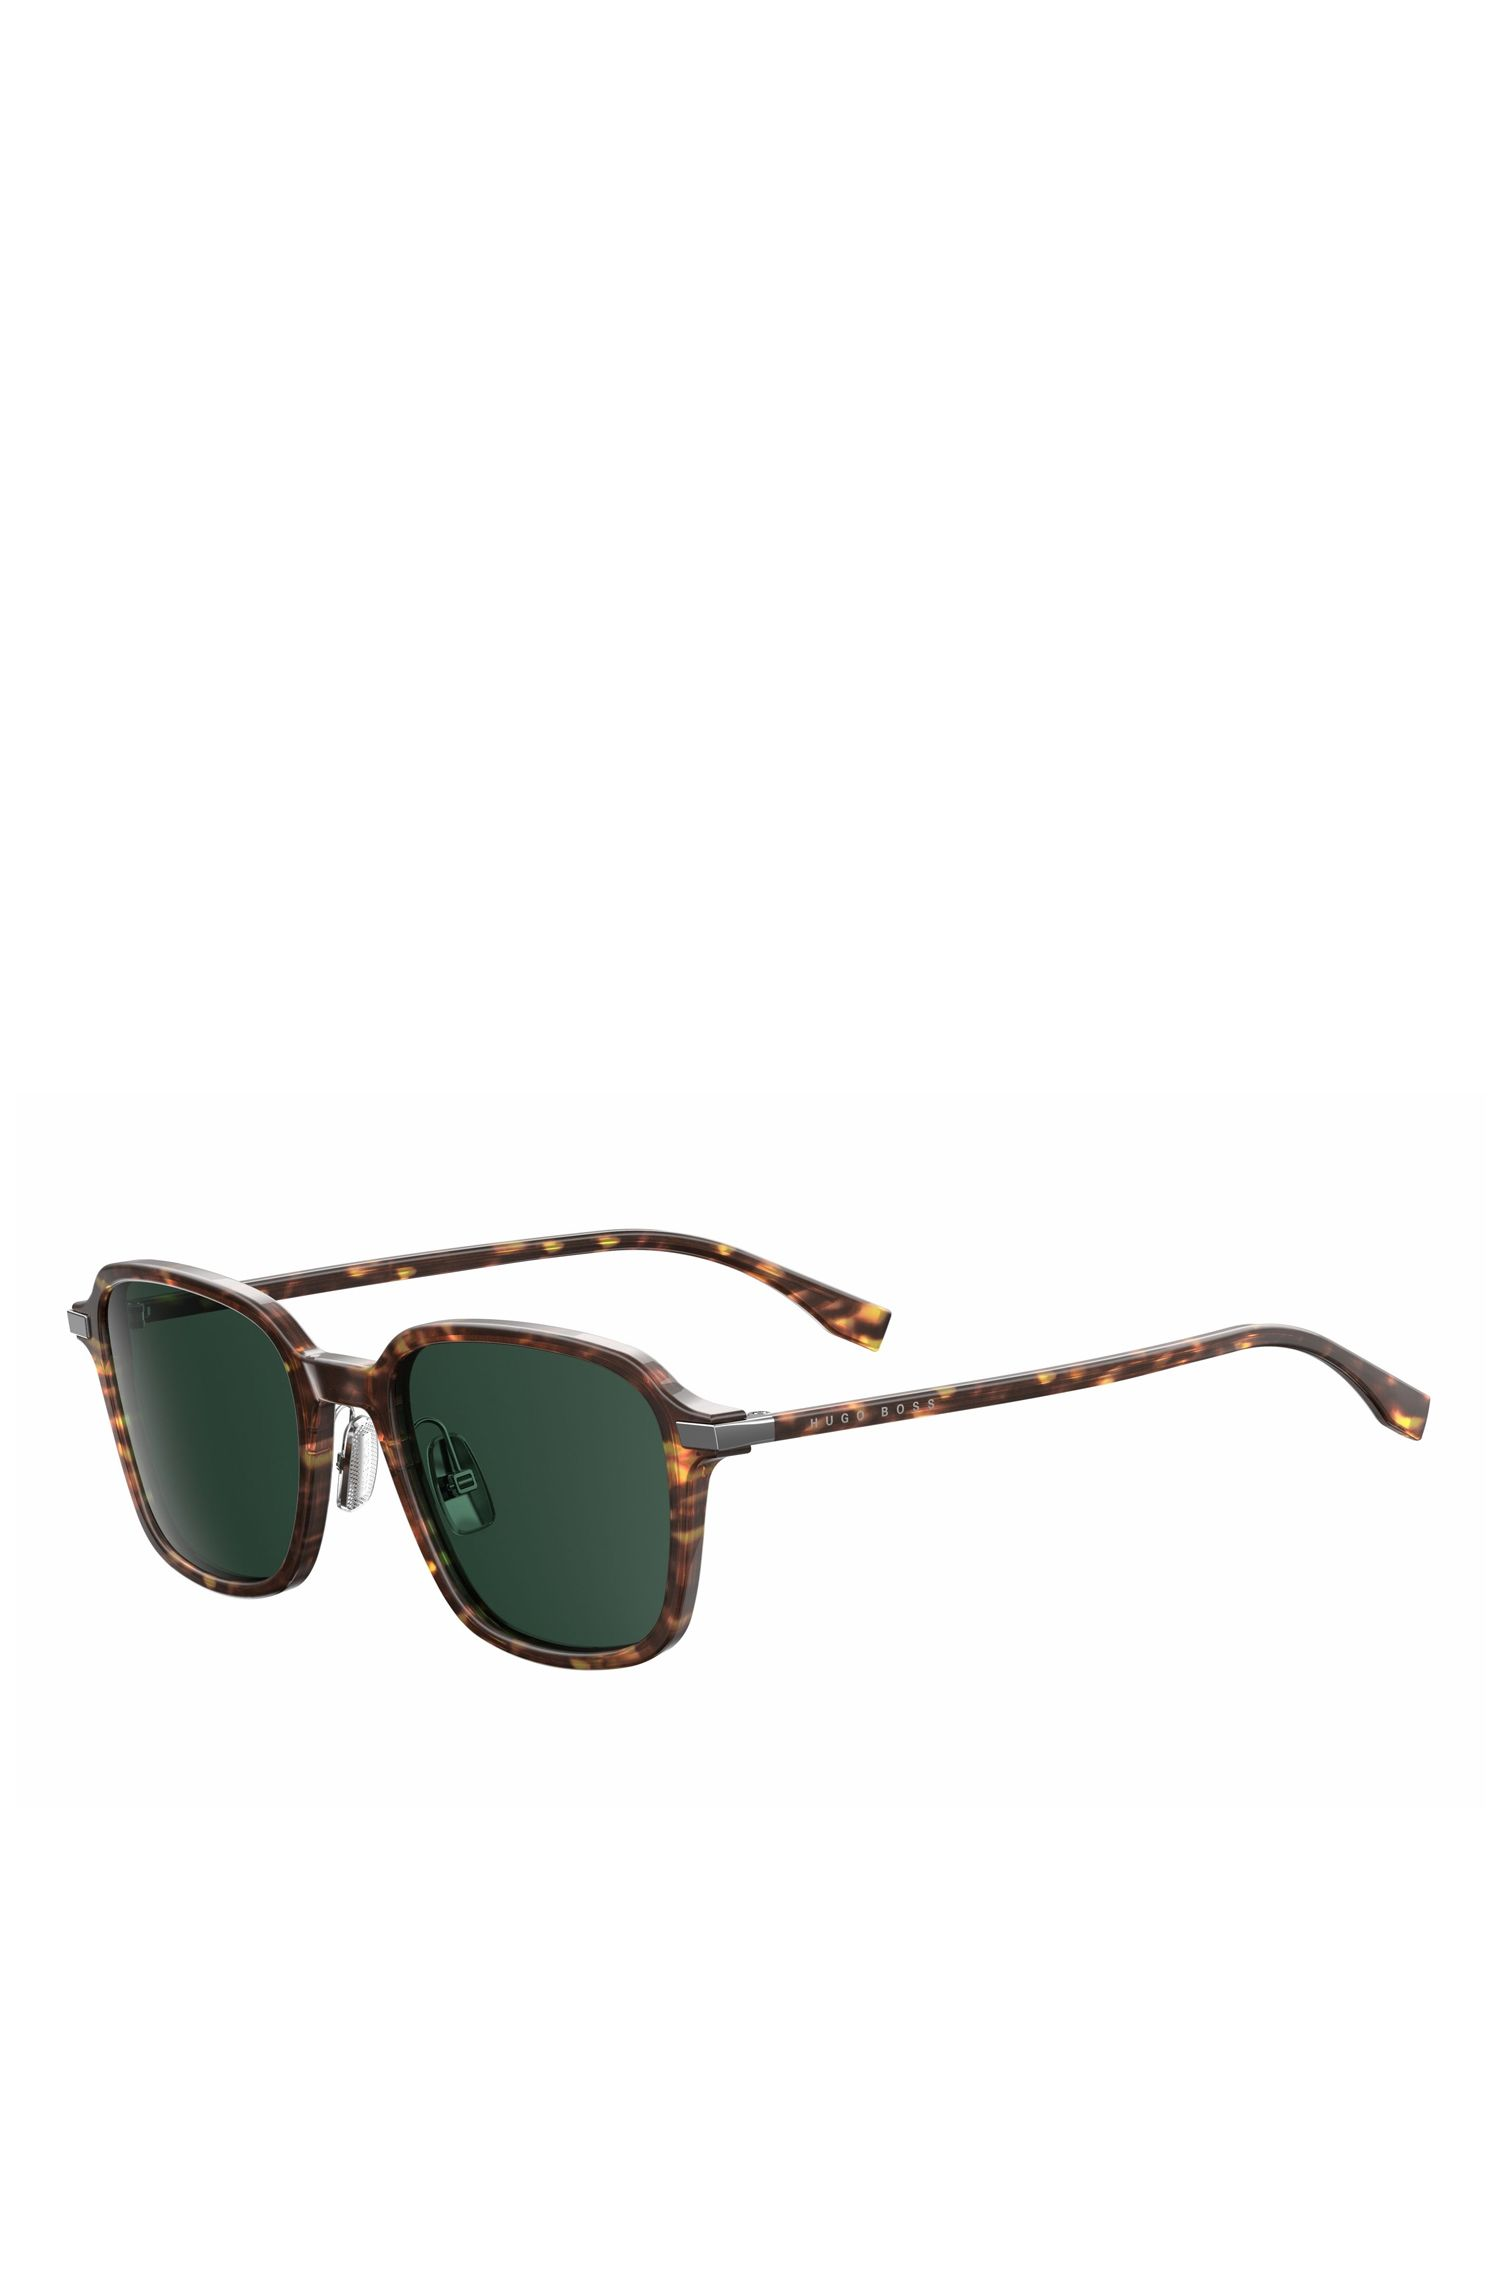 Green Lens Havana Square Sunglasses | BOSS 0909S